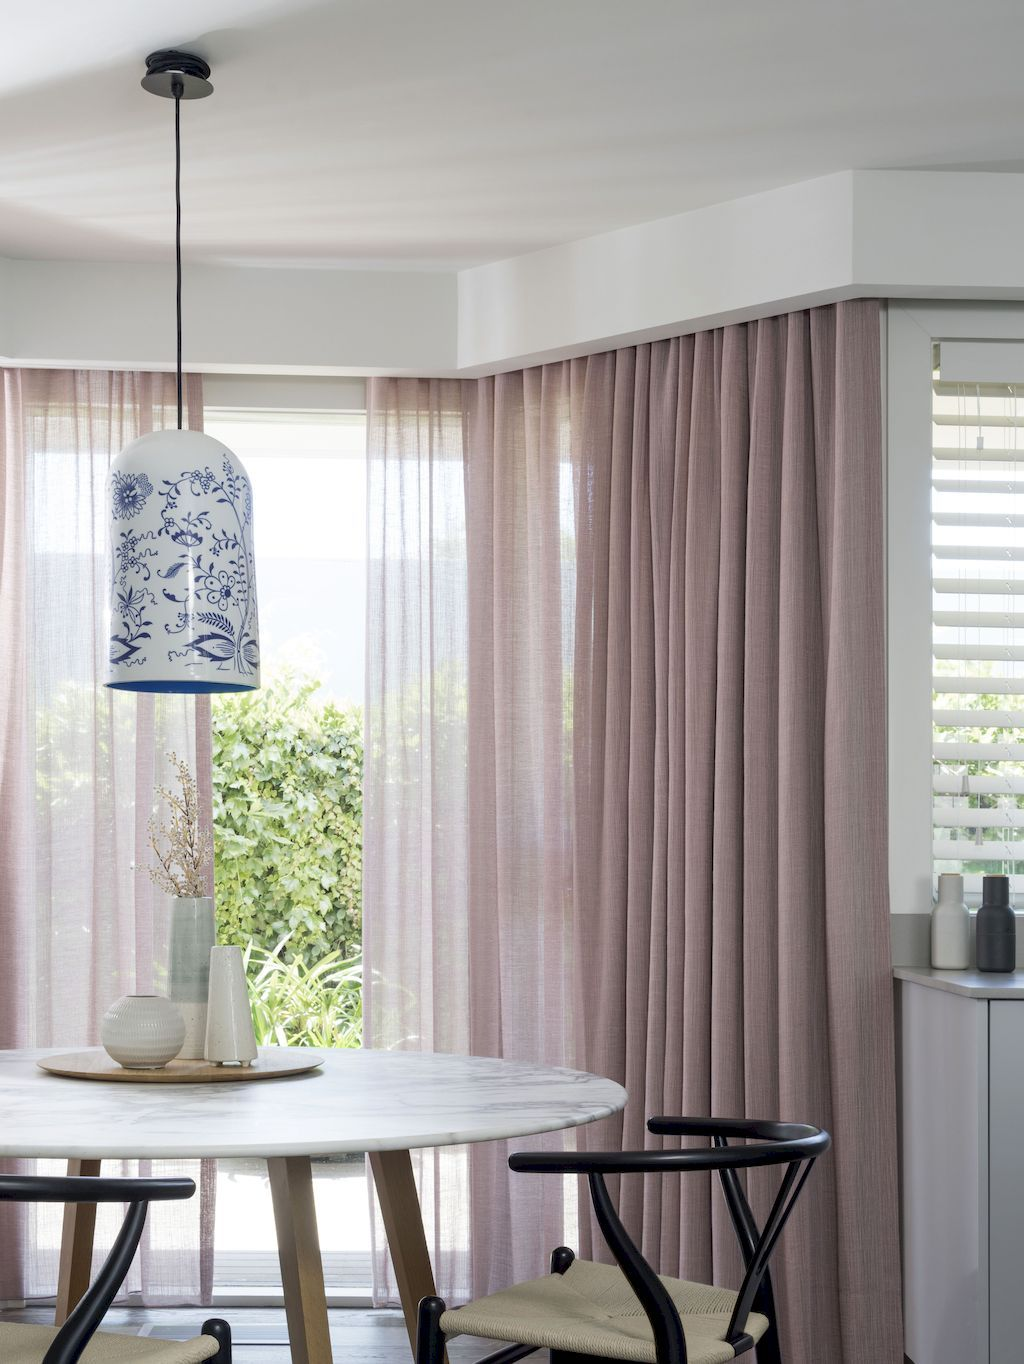 Unbelievable Trendy Design Curtains Can Change Your Residence Miraculously Curtains Living Room Modern Living Room Decor Curtains Sheers Curtains Living Room